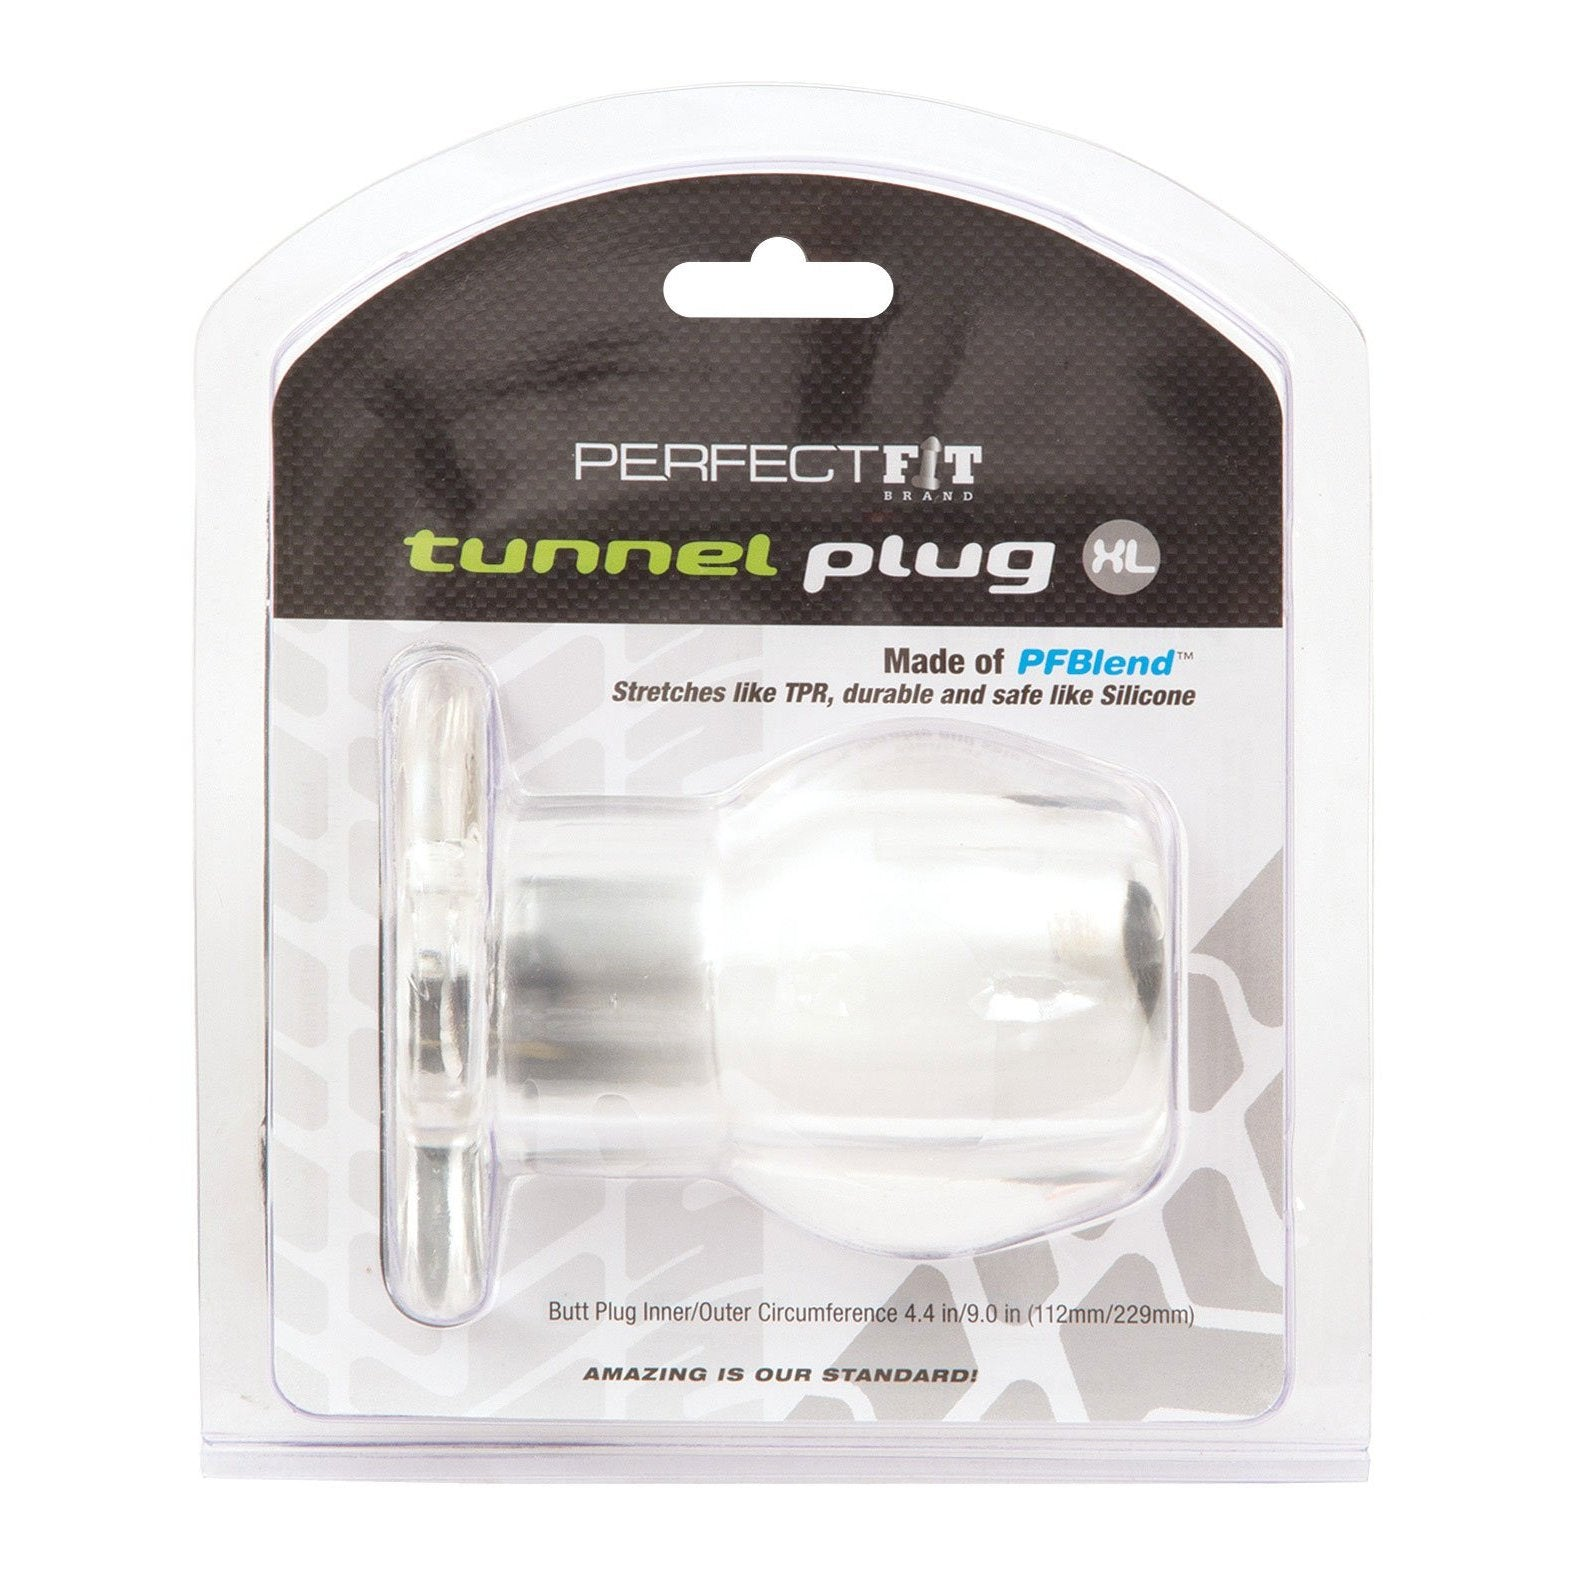 Perfect Fit Large Tunnel Plug - Gay Men's Sex Toys - Adam's Toy Box